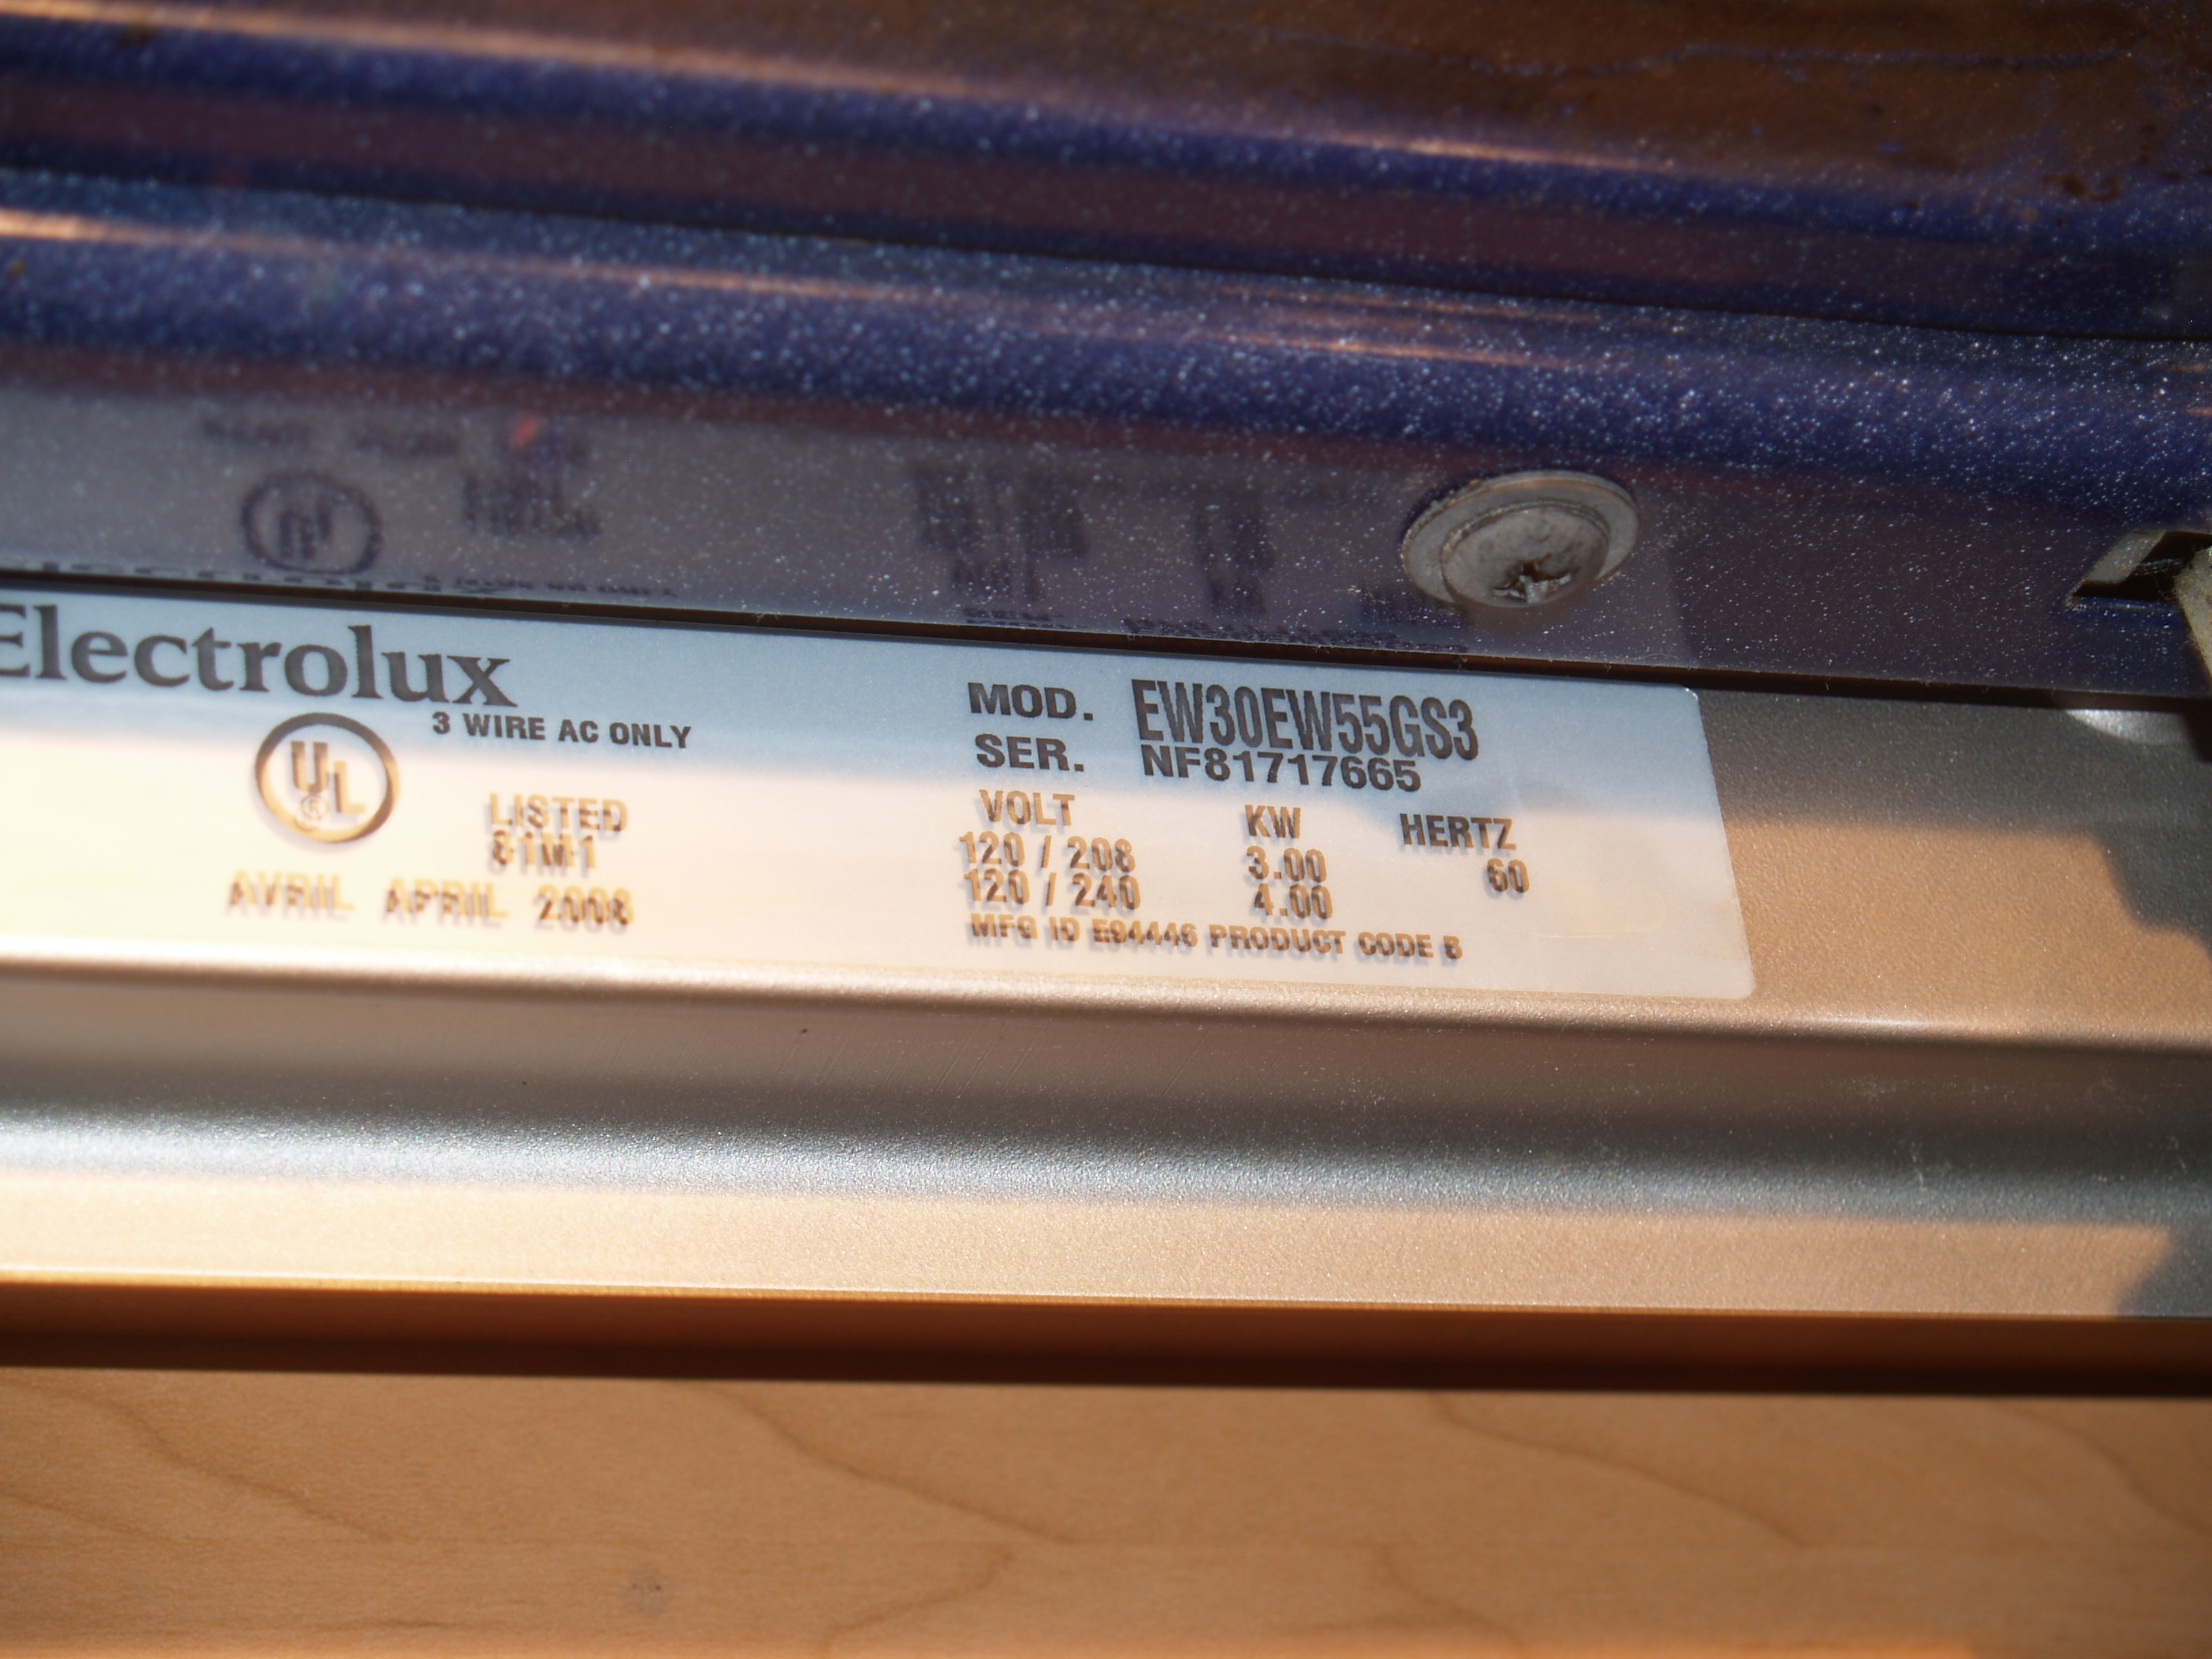 Electrolux Fw30ew55gs3 Oven On Bake Does Not Reach The Temperature Wiring Instructions Model And Serial Number